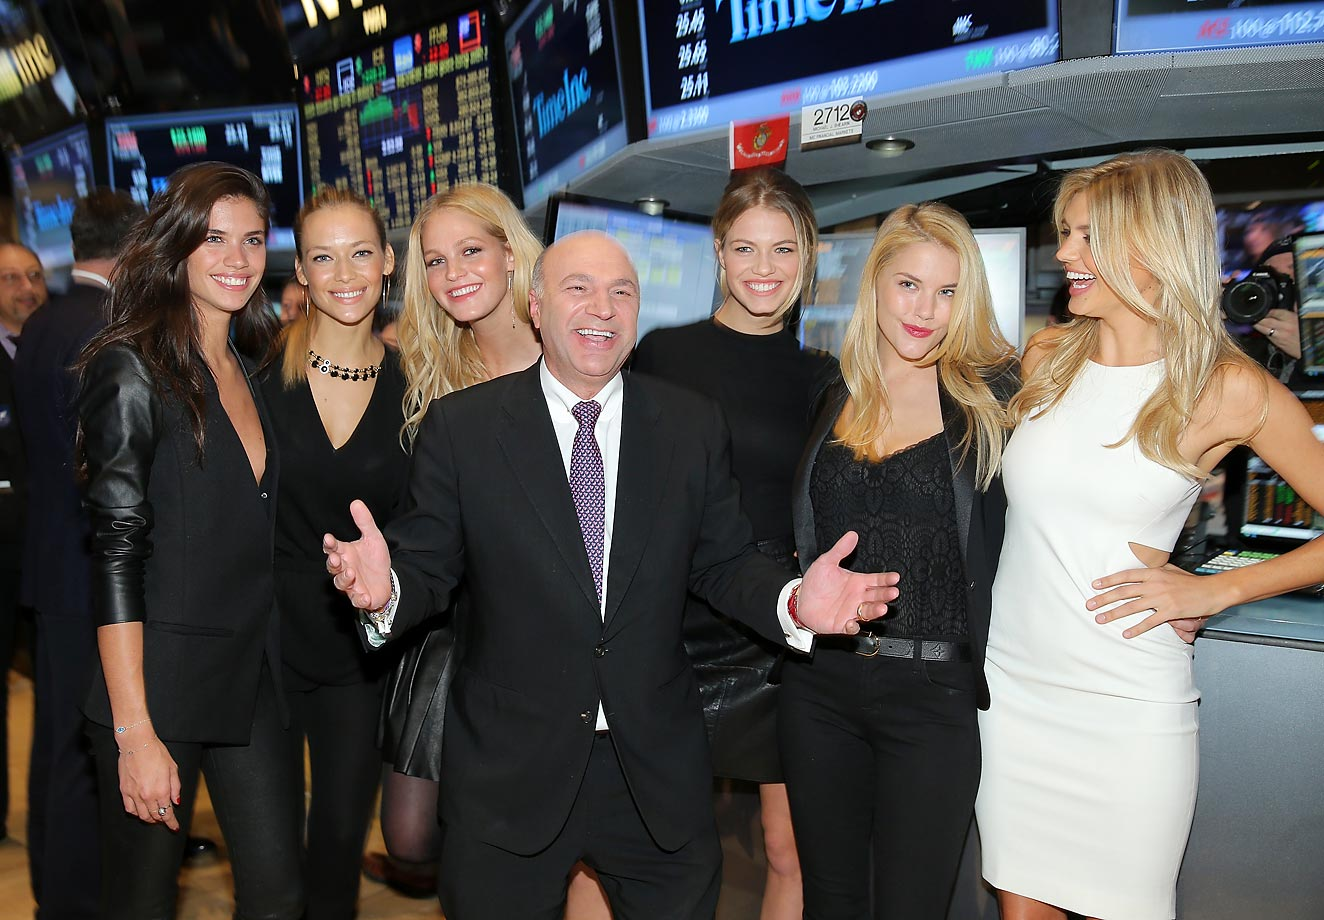 Sports Illustrated swimsuit models Sara Sampaio, Hannah Ferguson, Erin Heatherton, media personality and investor Kevin O' Leary, Hailey Clauson, Ashley Smith and Kelly Rohrbach pose for a photo at the New York Stock Exchange.